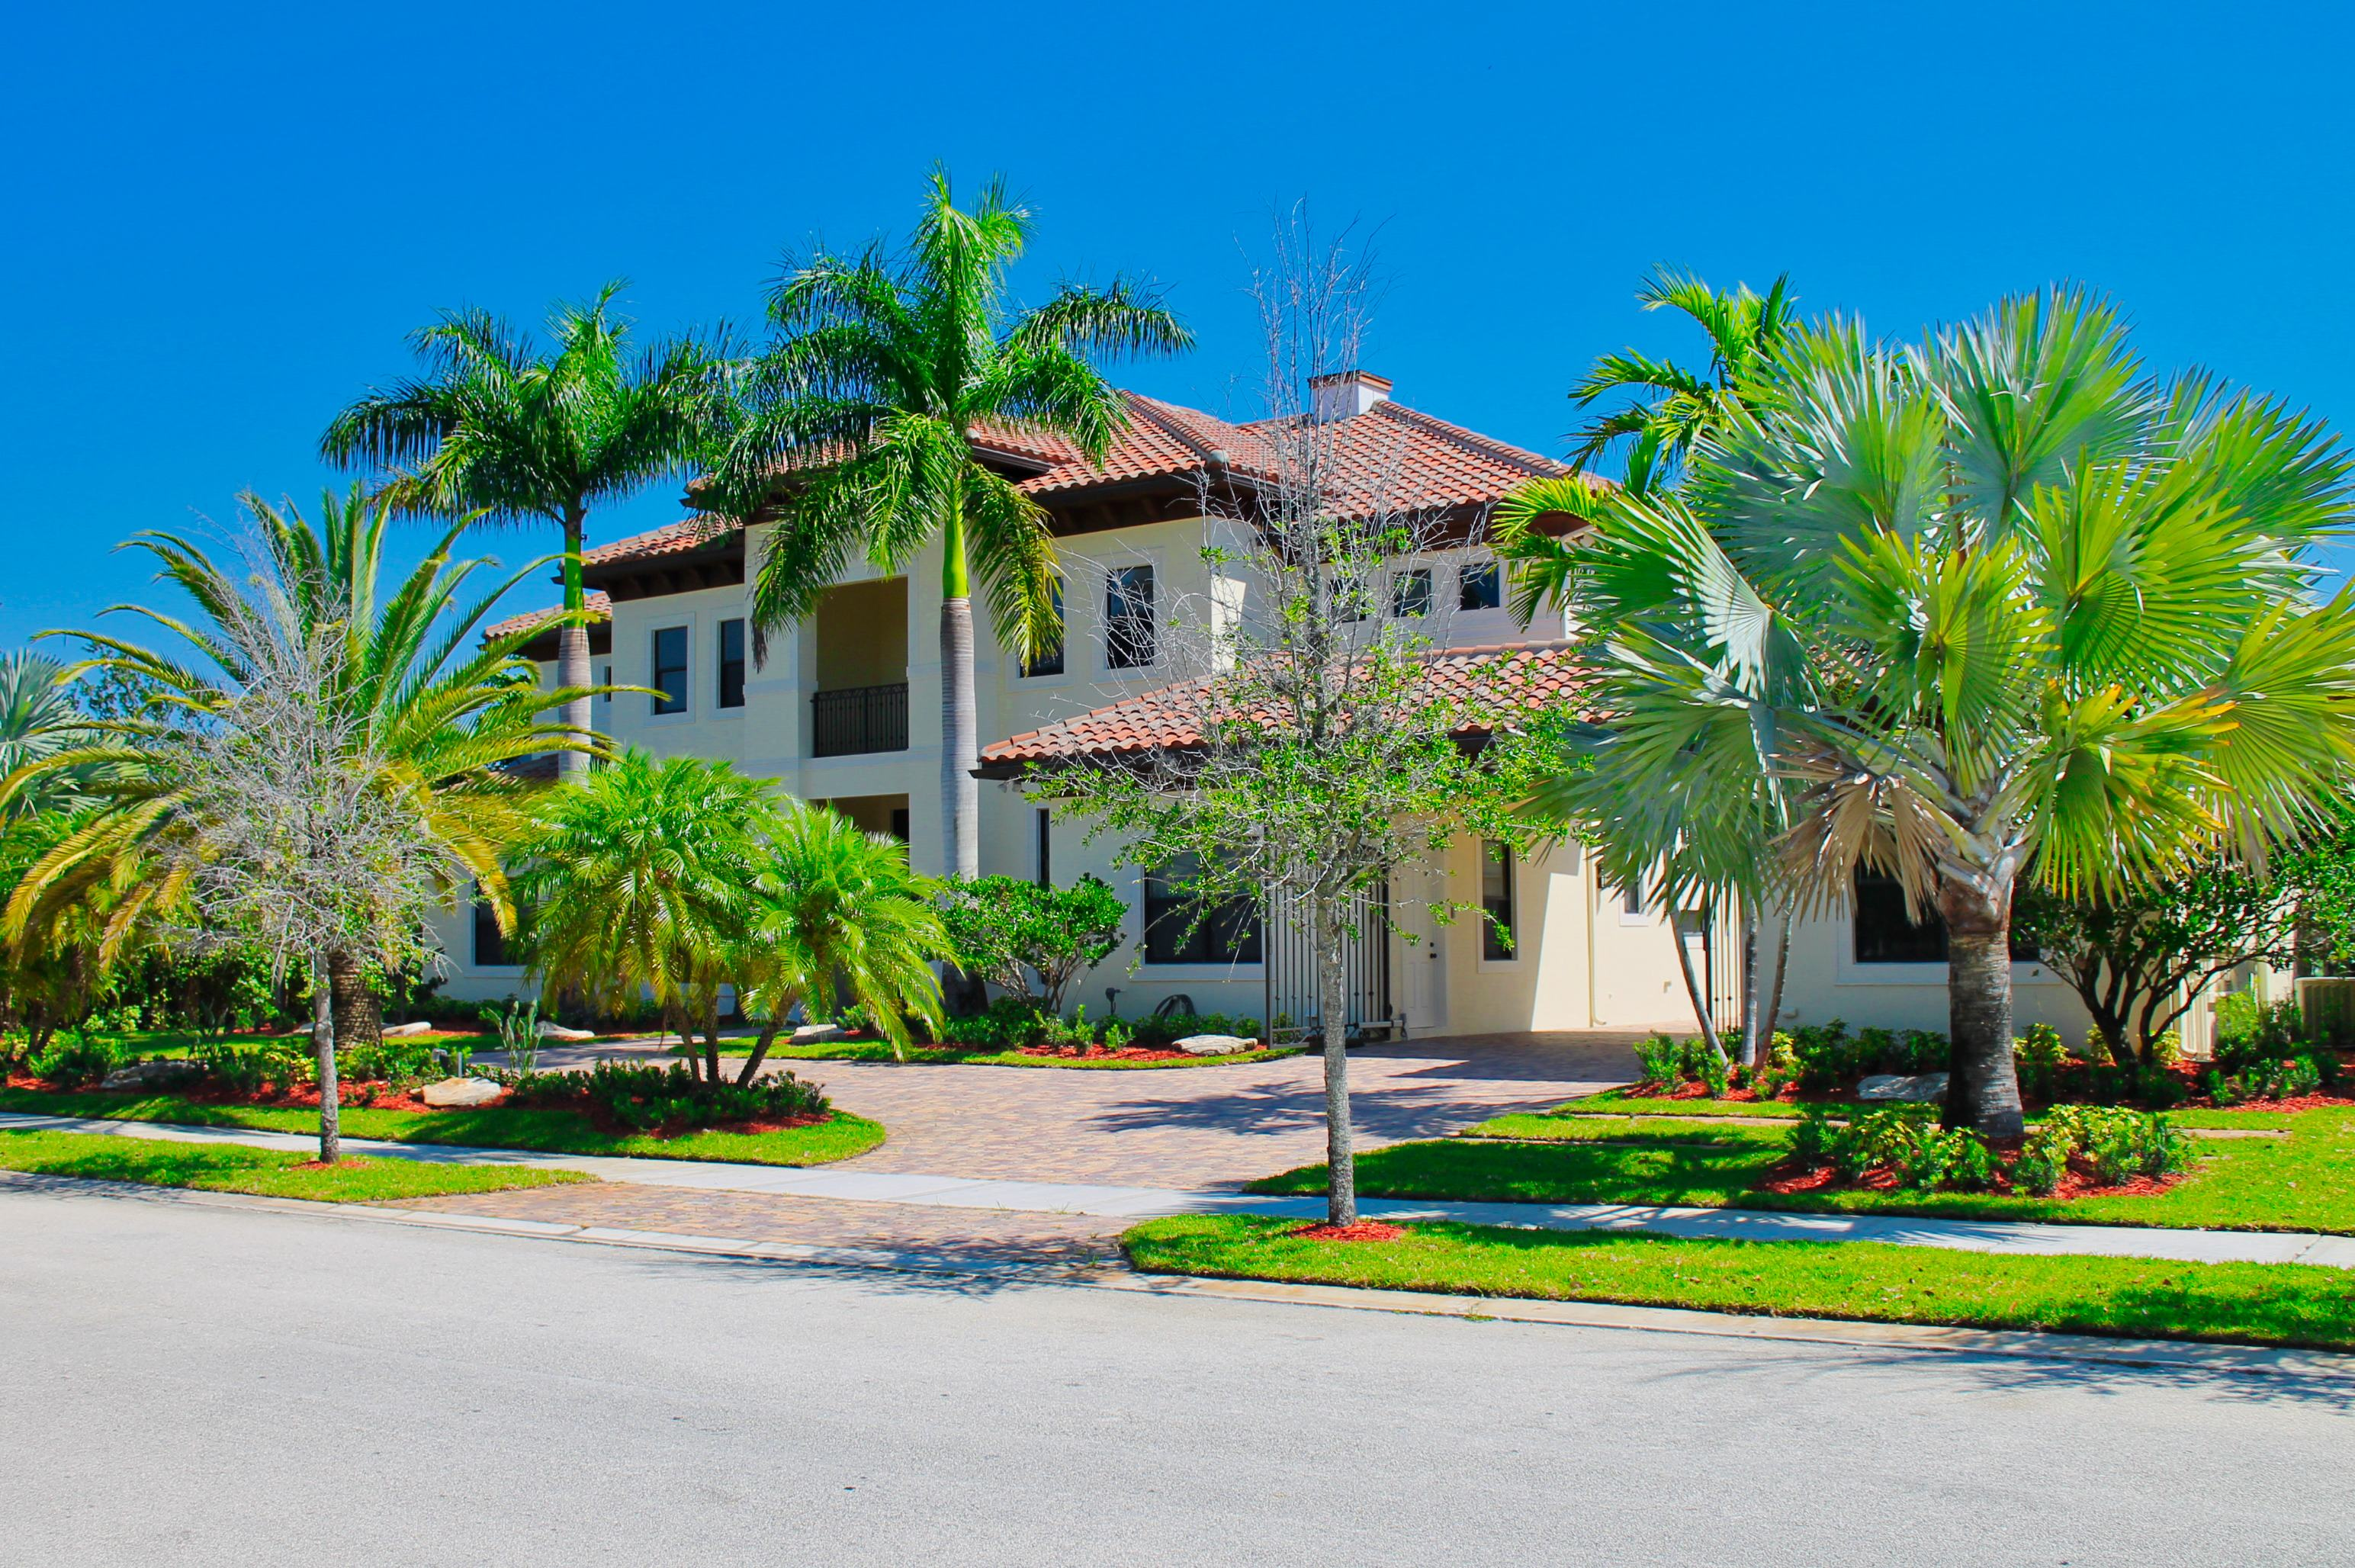 Coconut Creek Fl Commercial Lawn Services Pink And Green